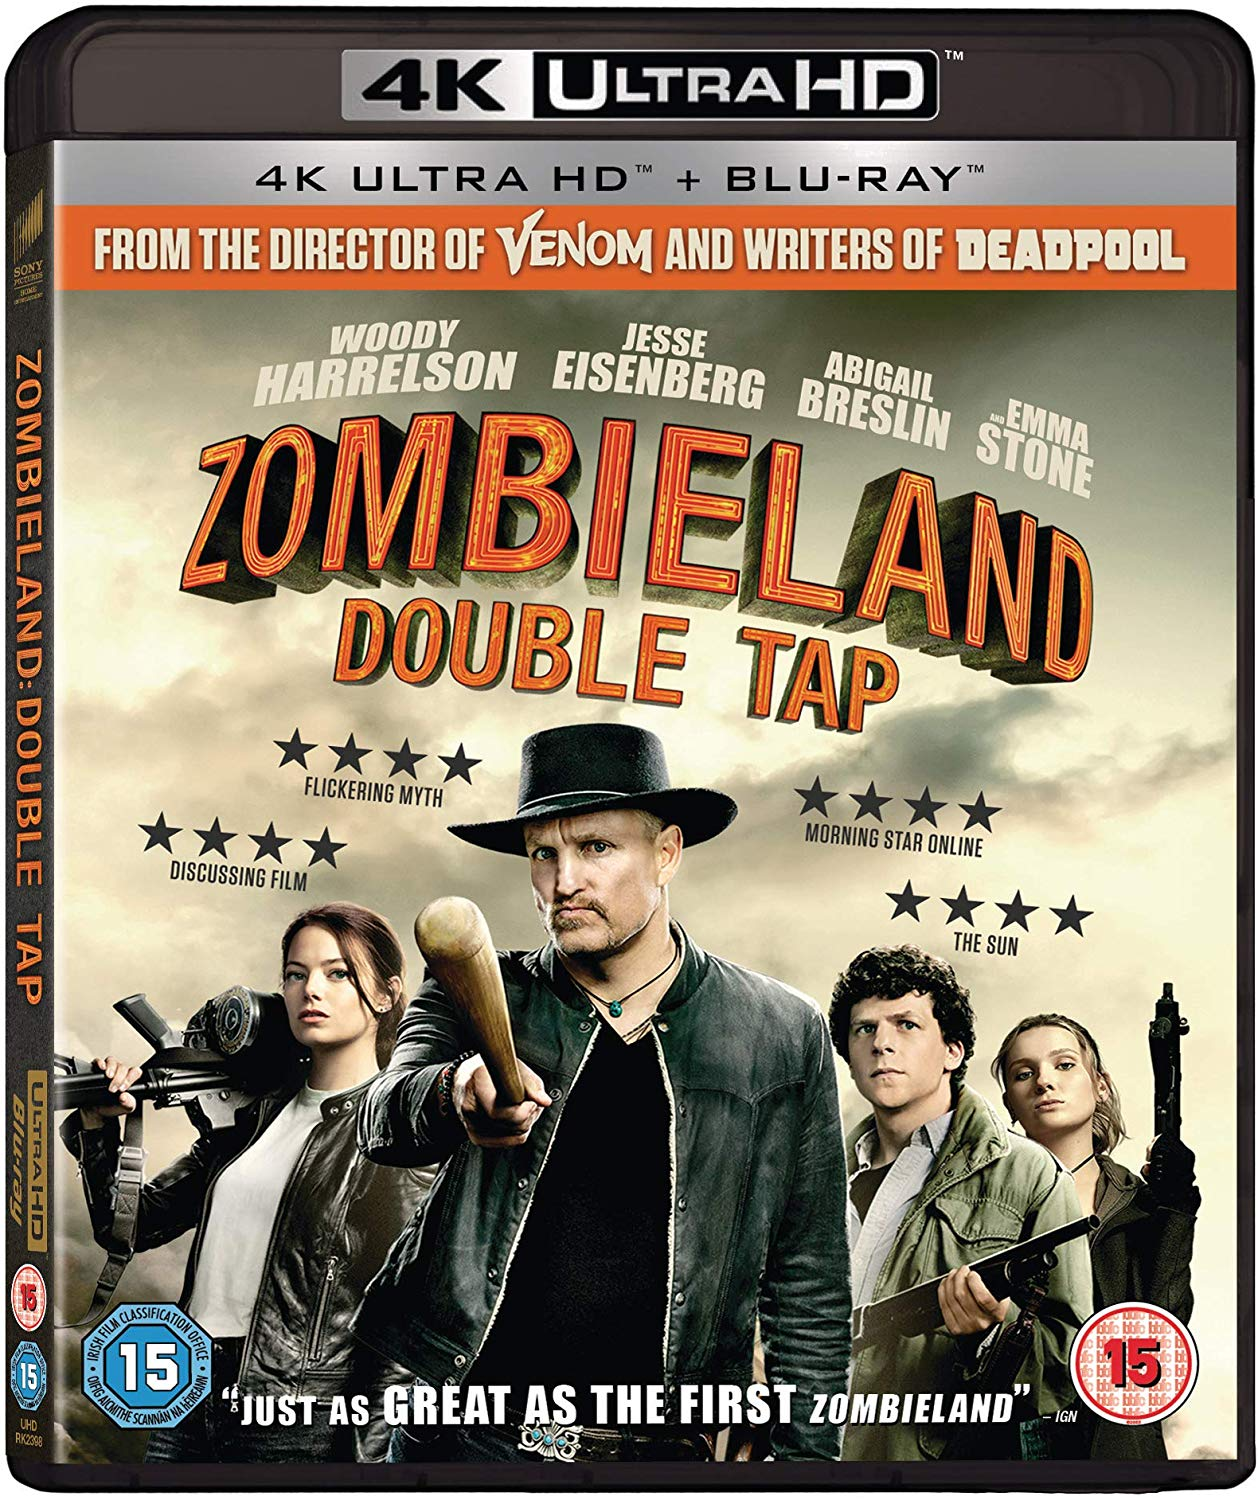 Zombieland Double Tap UK 4K Blu-Ray